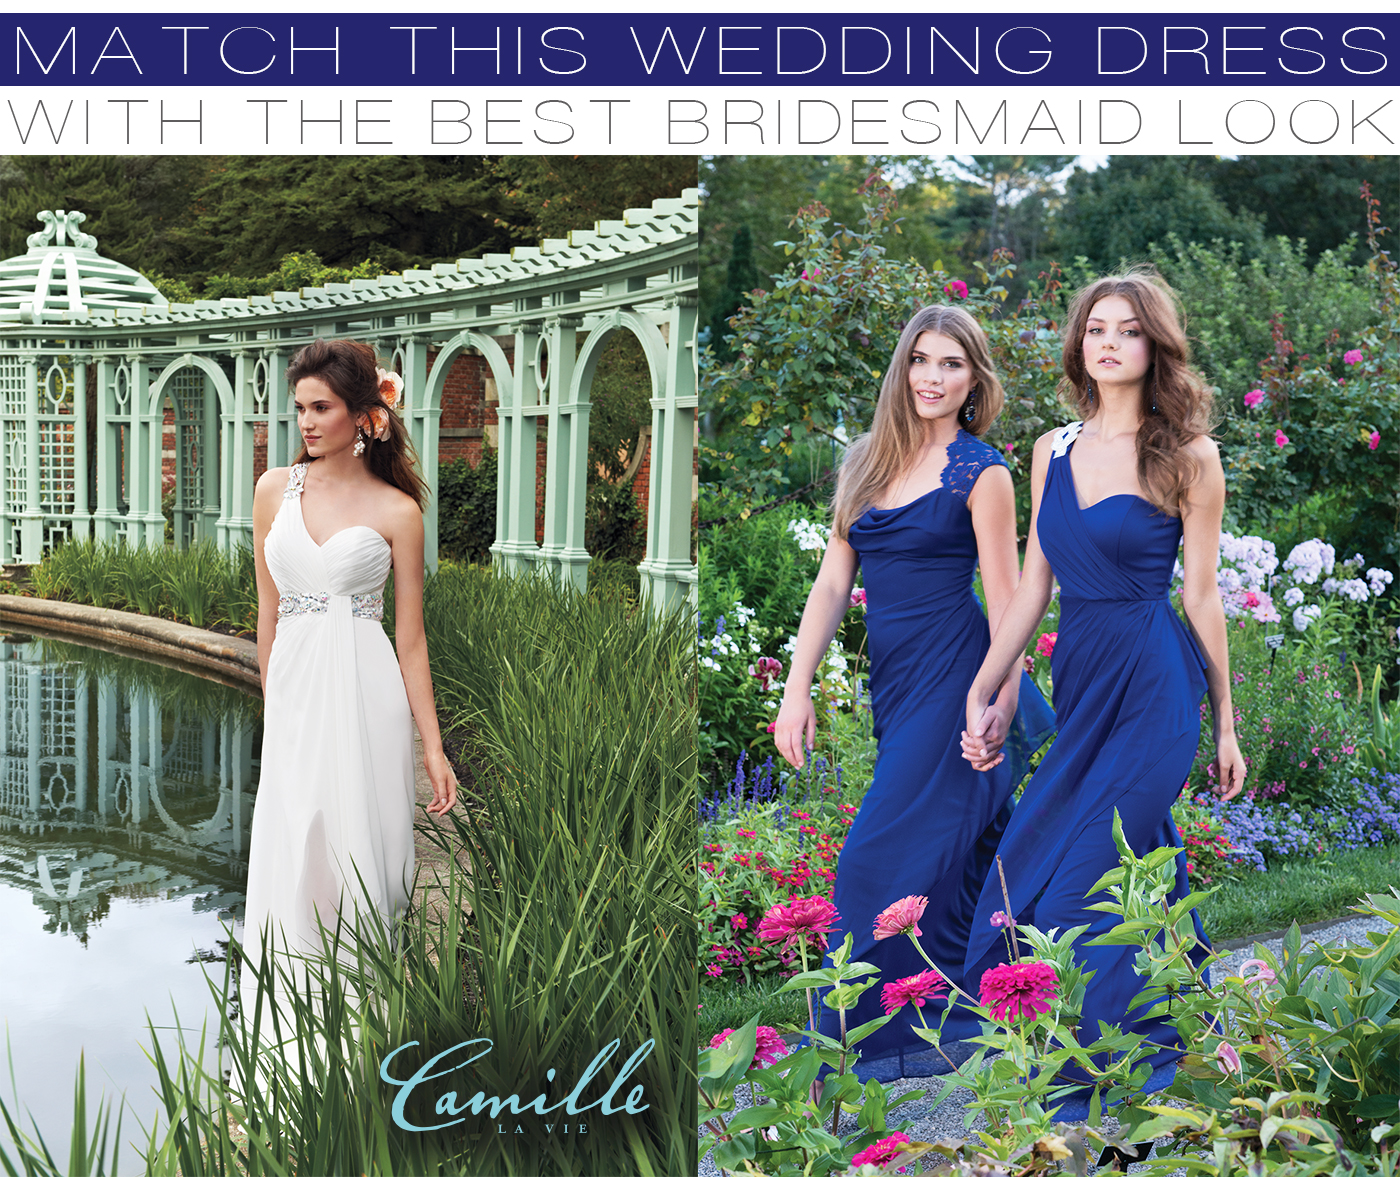 Wedding Dresses, Bridal Gowns and Wedding Reception Dresses ...